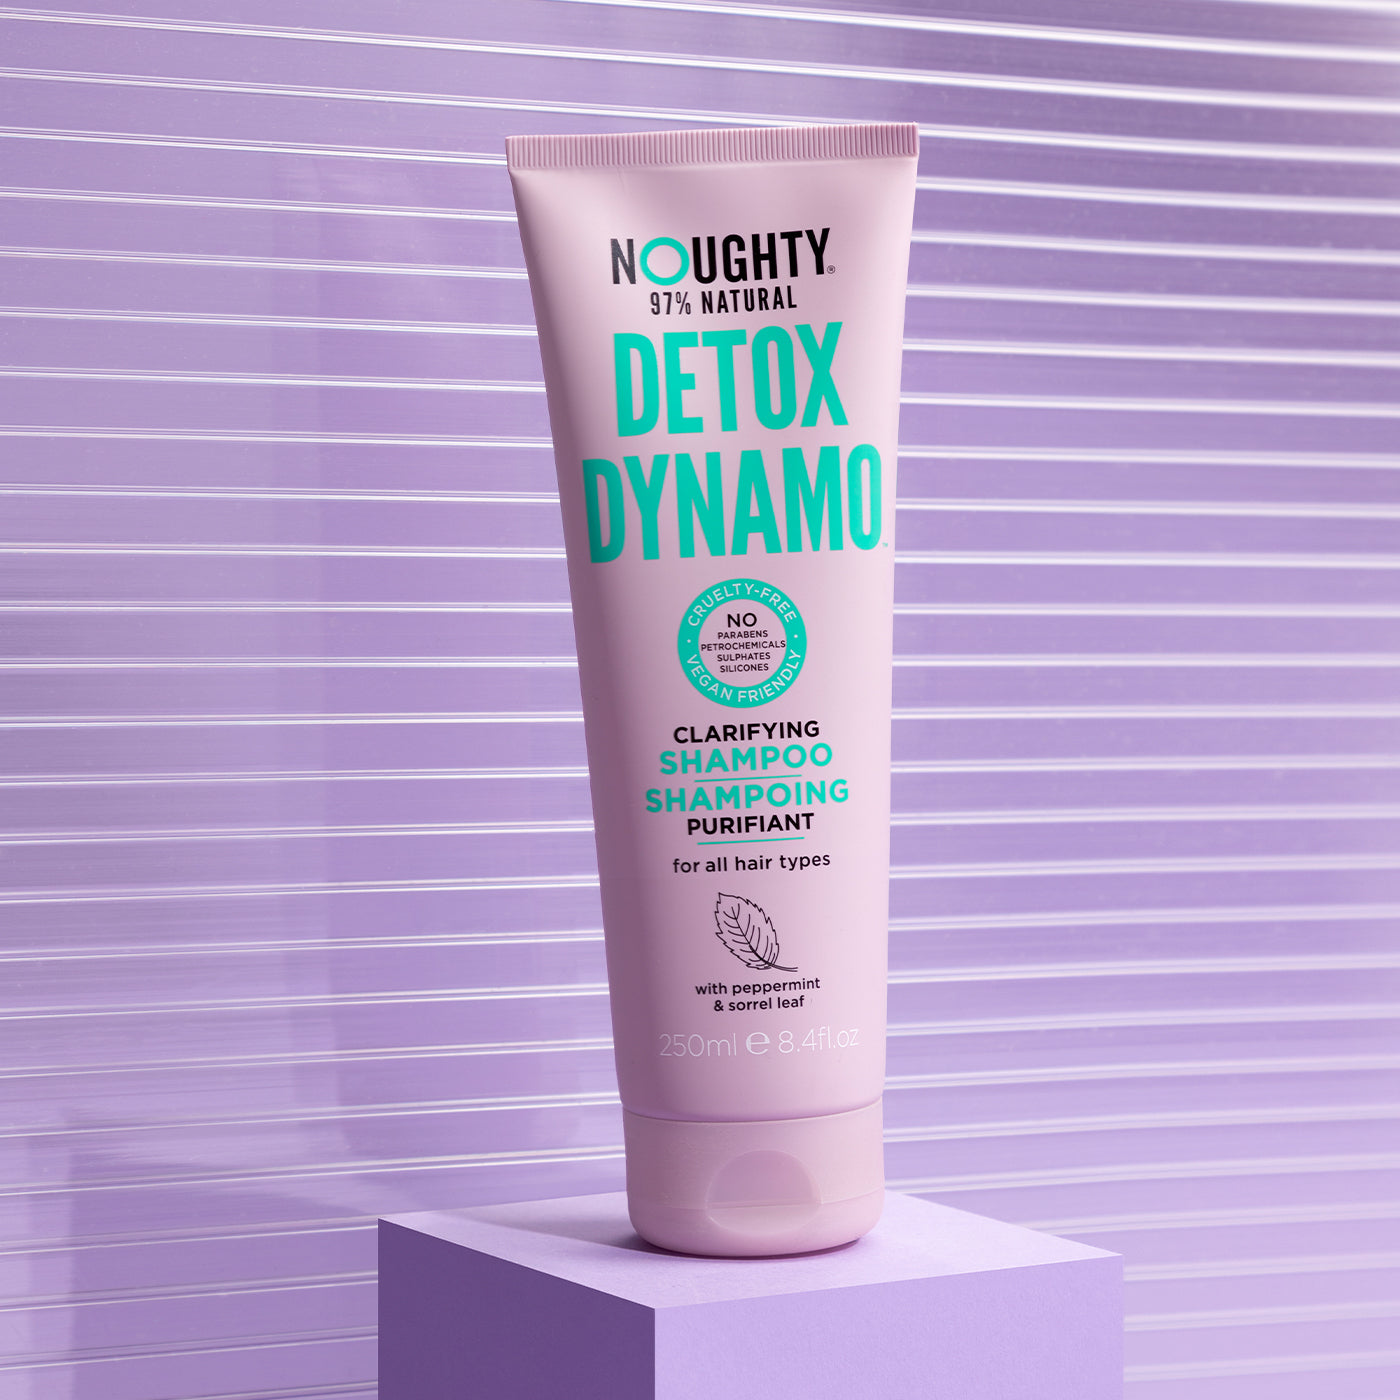 Noughty Detox Dynamo purifying clarifying shampoo for all hair types with build up needing a deep clean. Natural haircare vegan cruelty free natural sulphate free paraben free